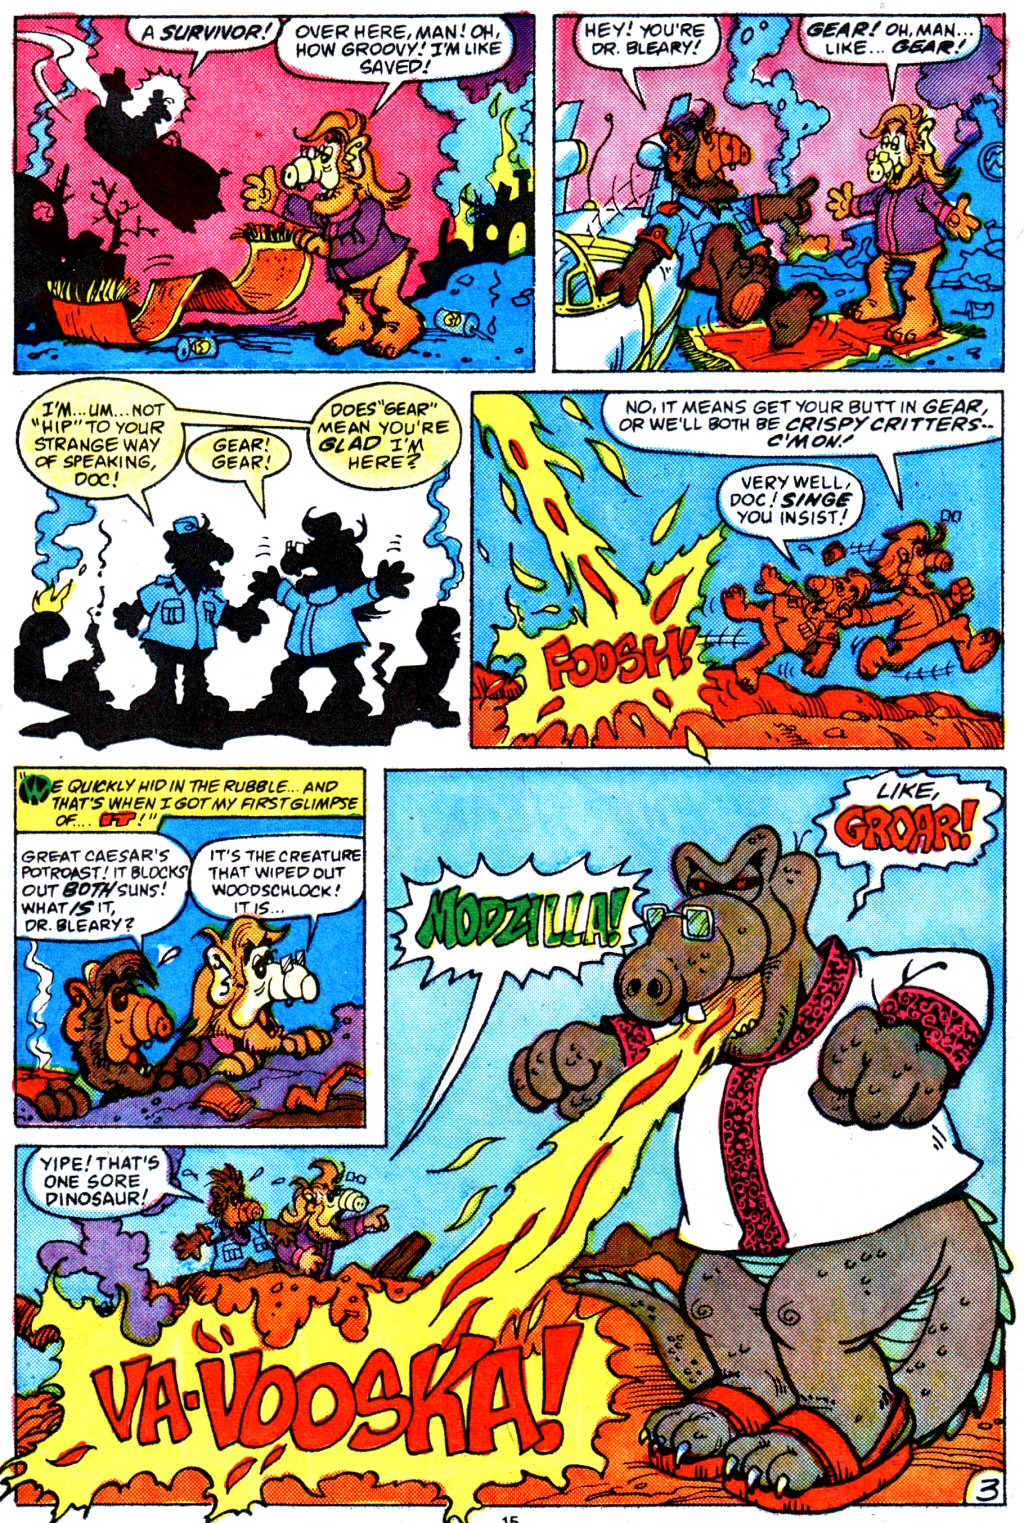 Read online ALF comic -  Issue #4 - 13